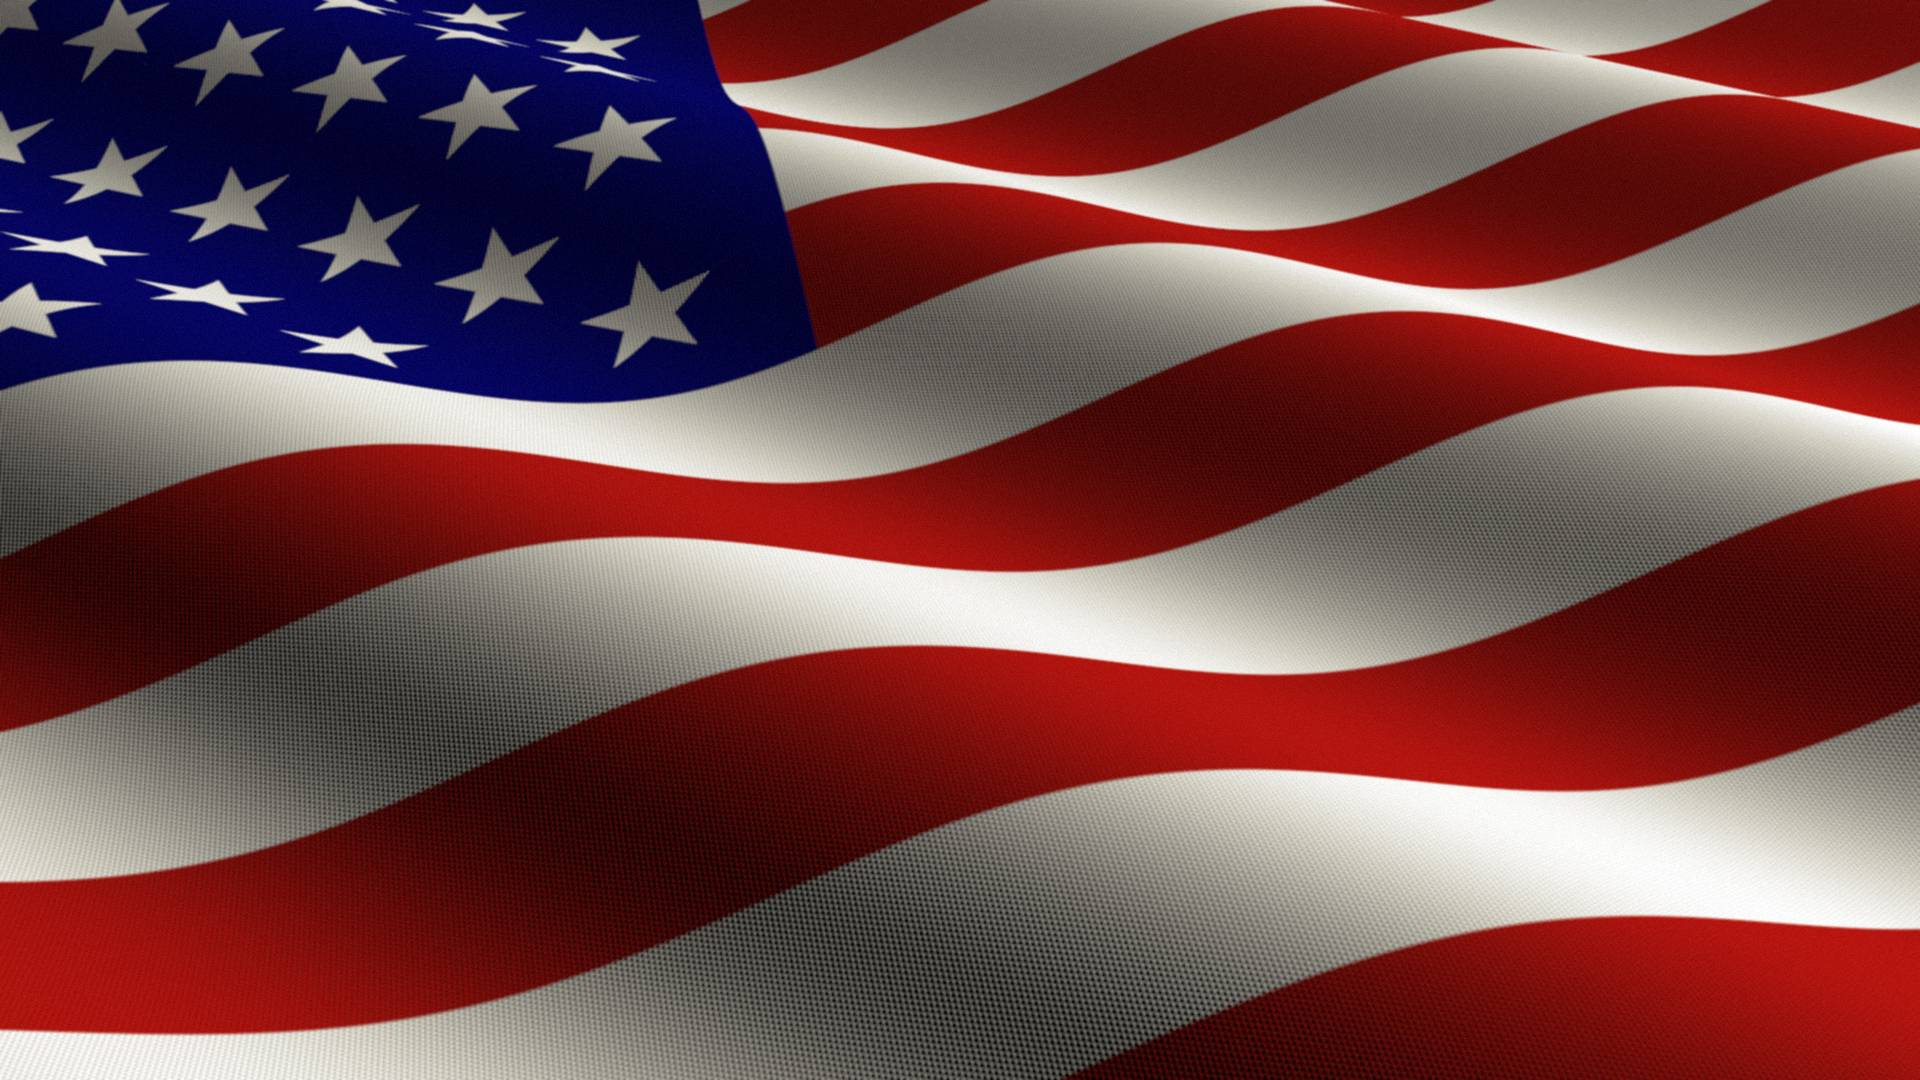 Flag Desktop Background: American Flag Desktop Wallpapers